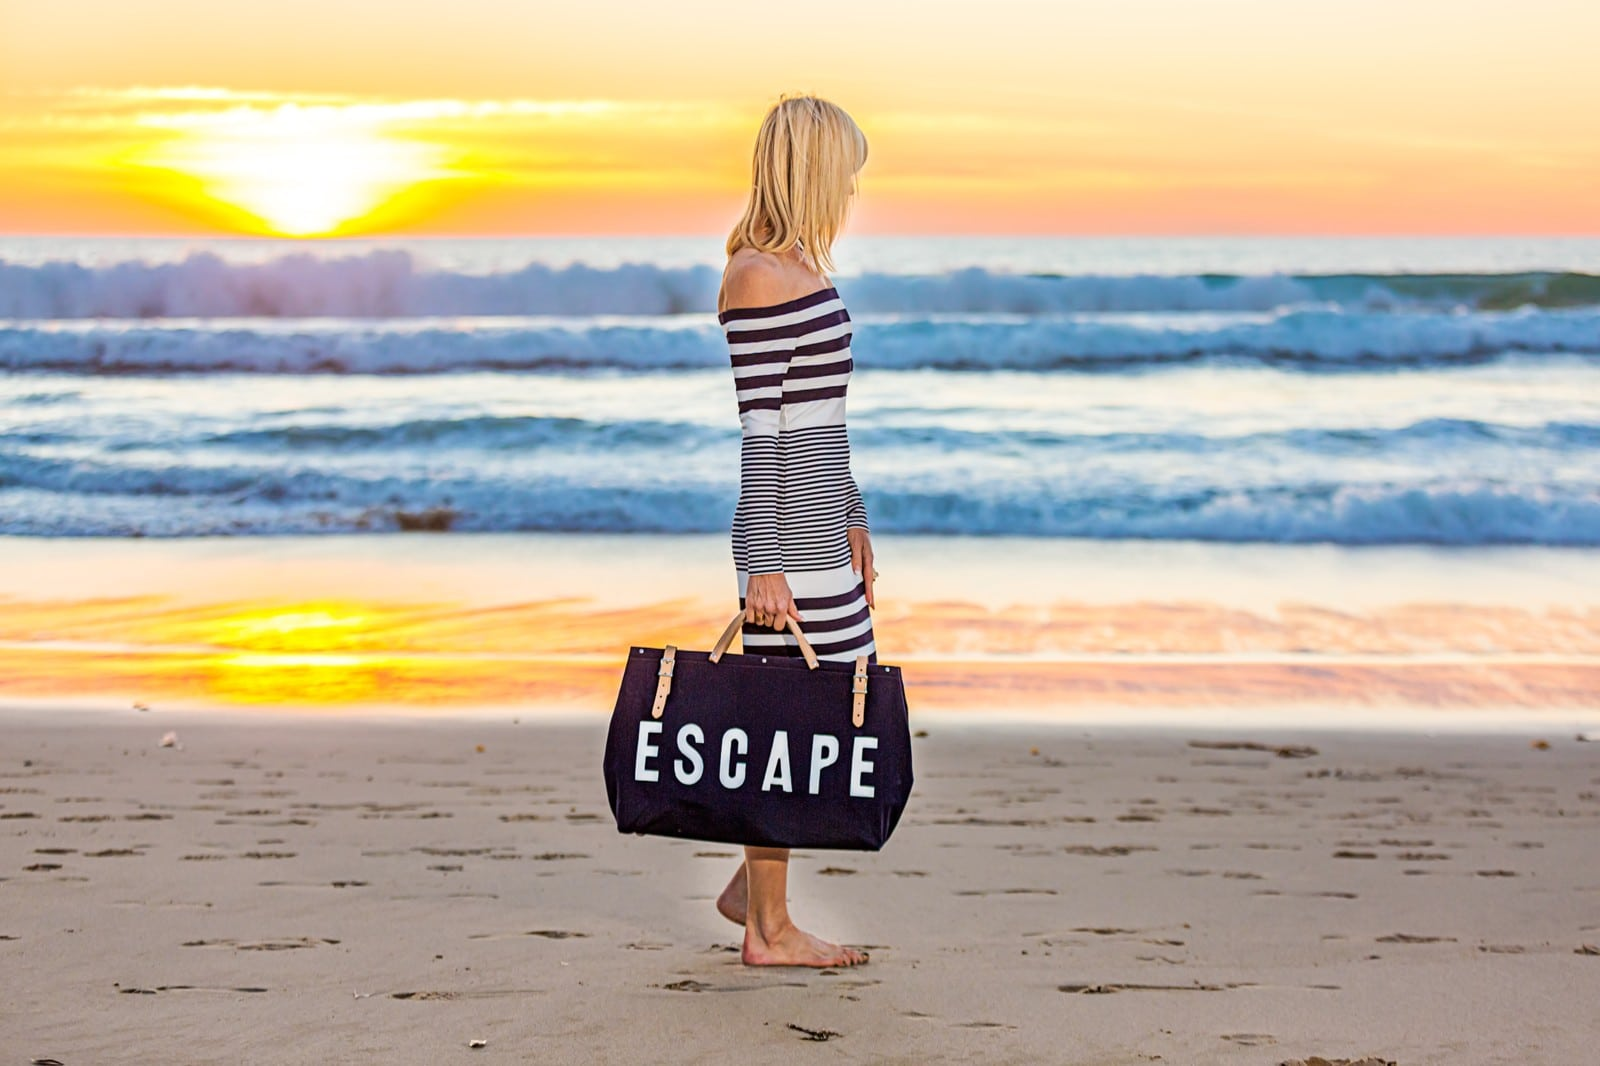 Walking on the Beach to Escape